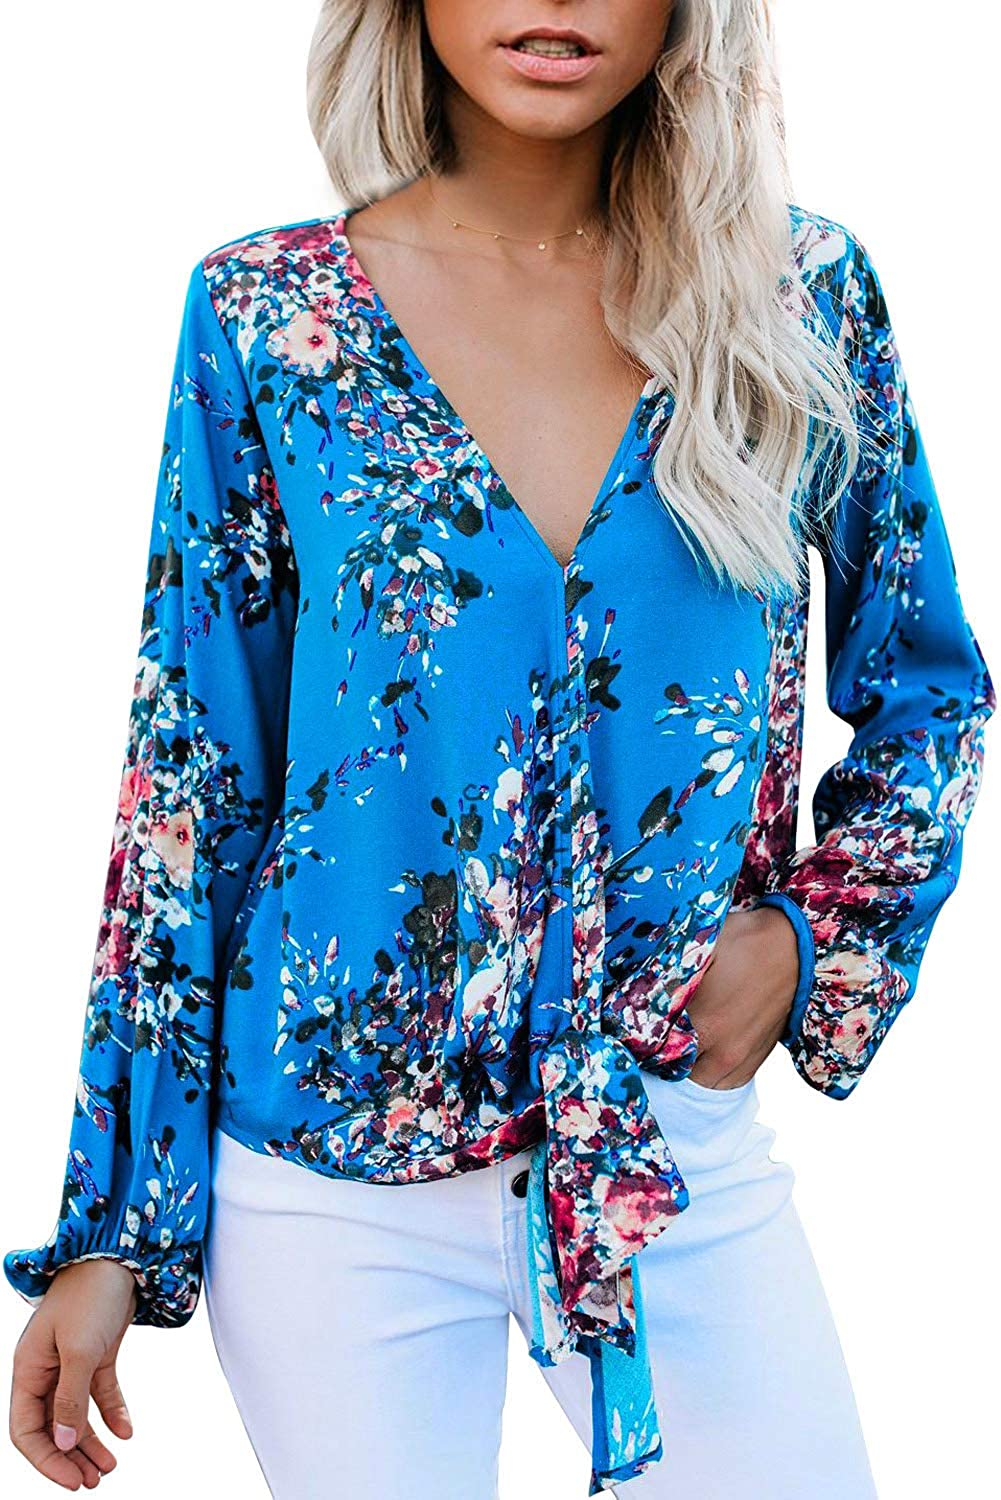 Womens Blouses Tops Floral Tie Knot Front Blouse Long Sleeve V Neck Casual Loose Fitting Shirts Floral Sky Blue L